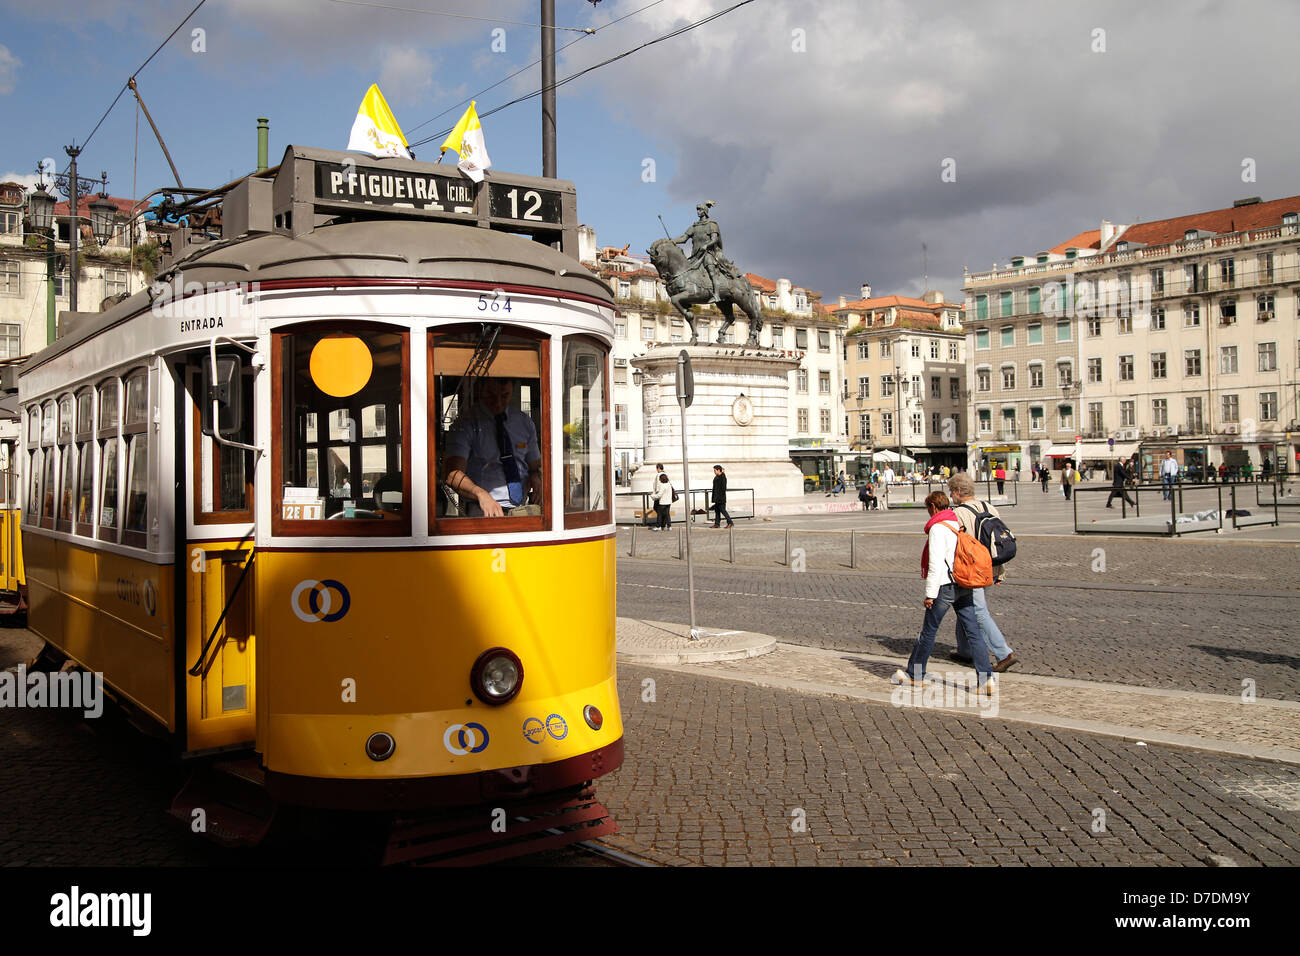 Historic Tram Line 12 on Square PraTa da Figueira in Lisbon, , Europe - Stock Image